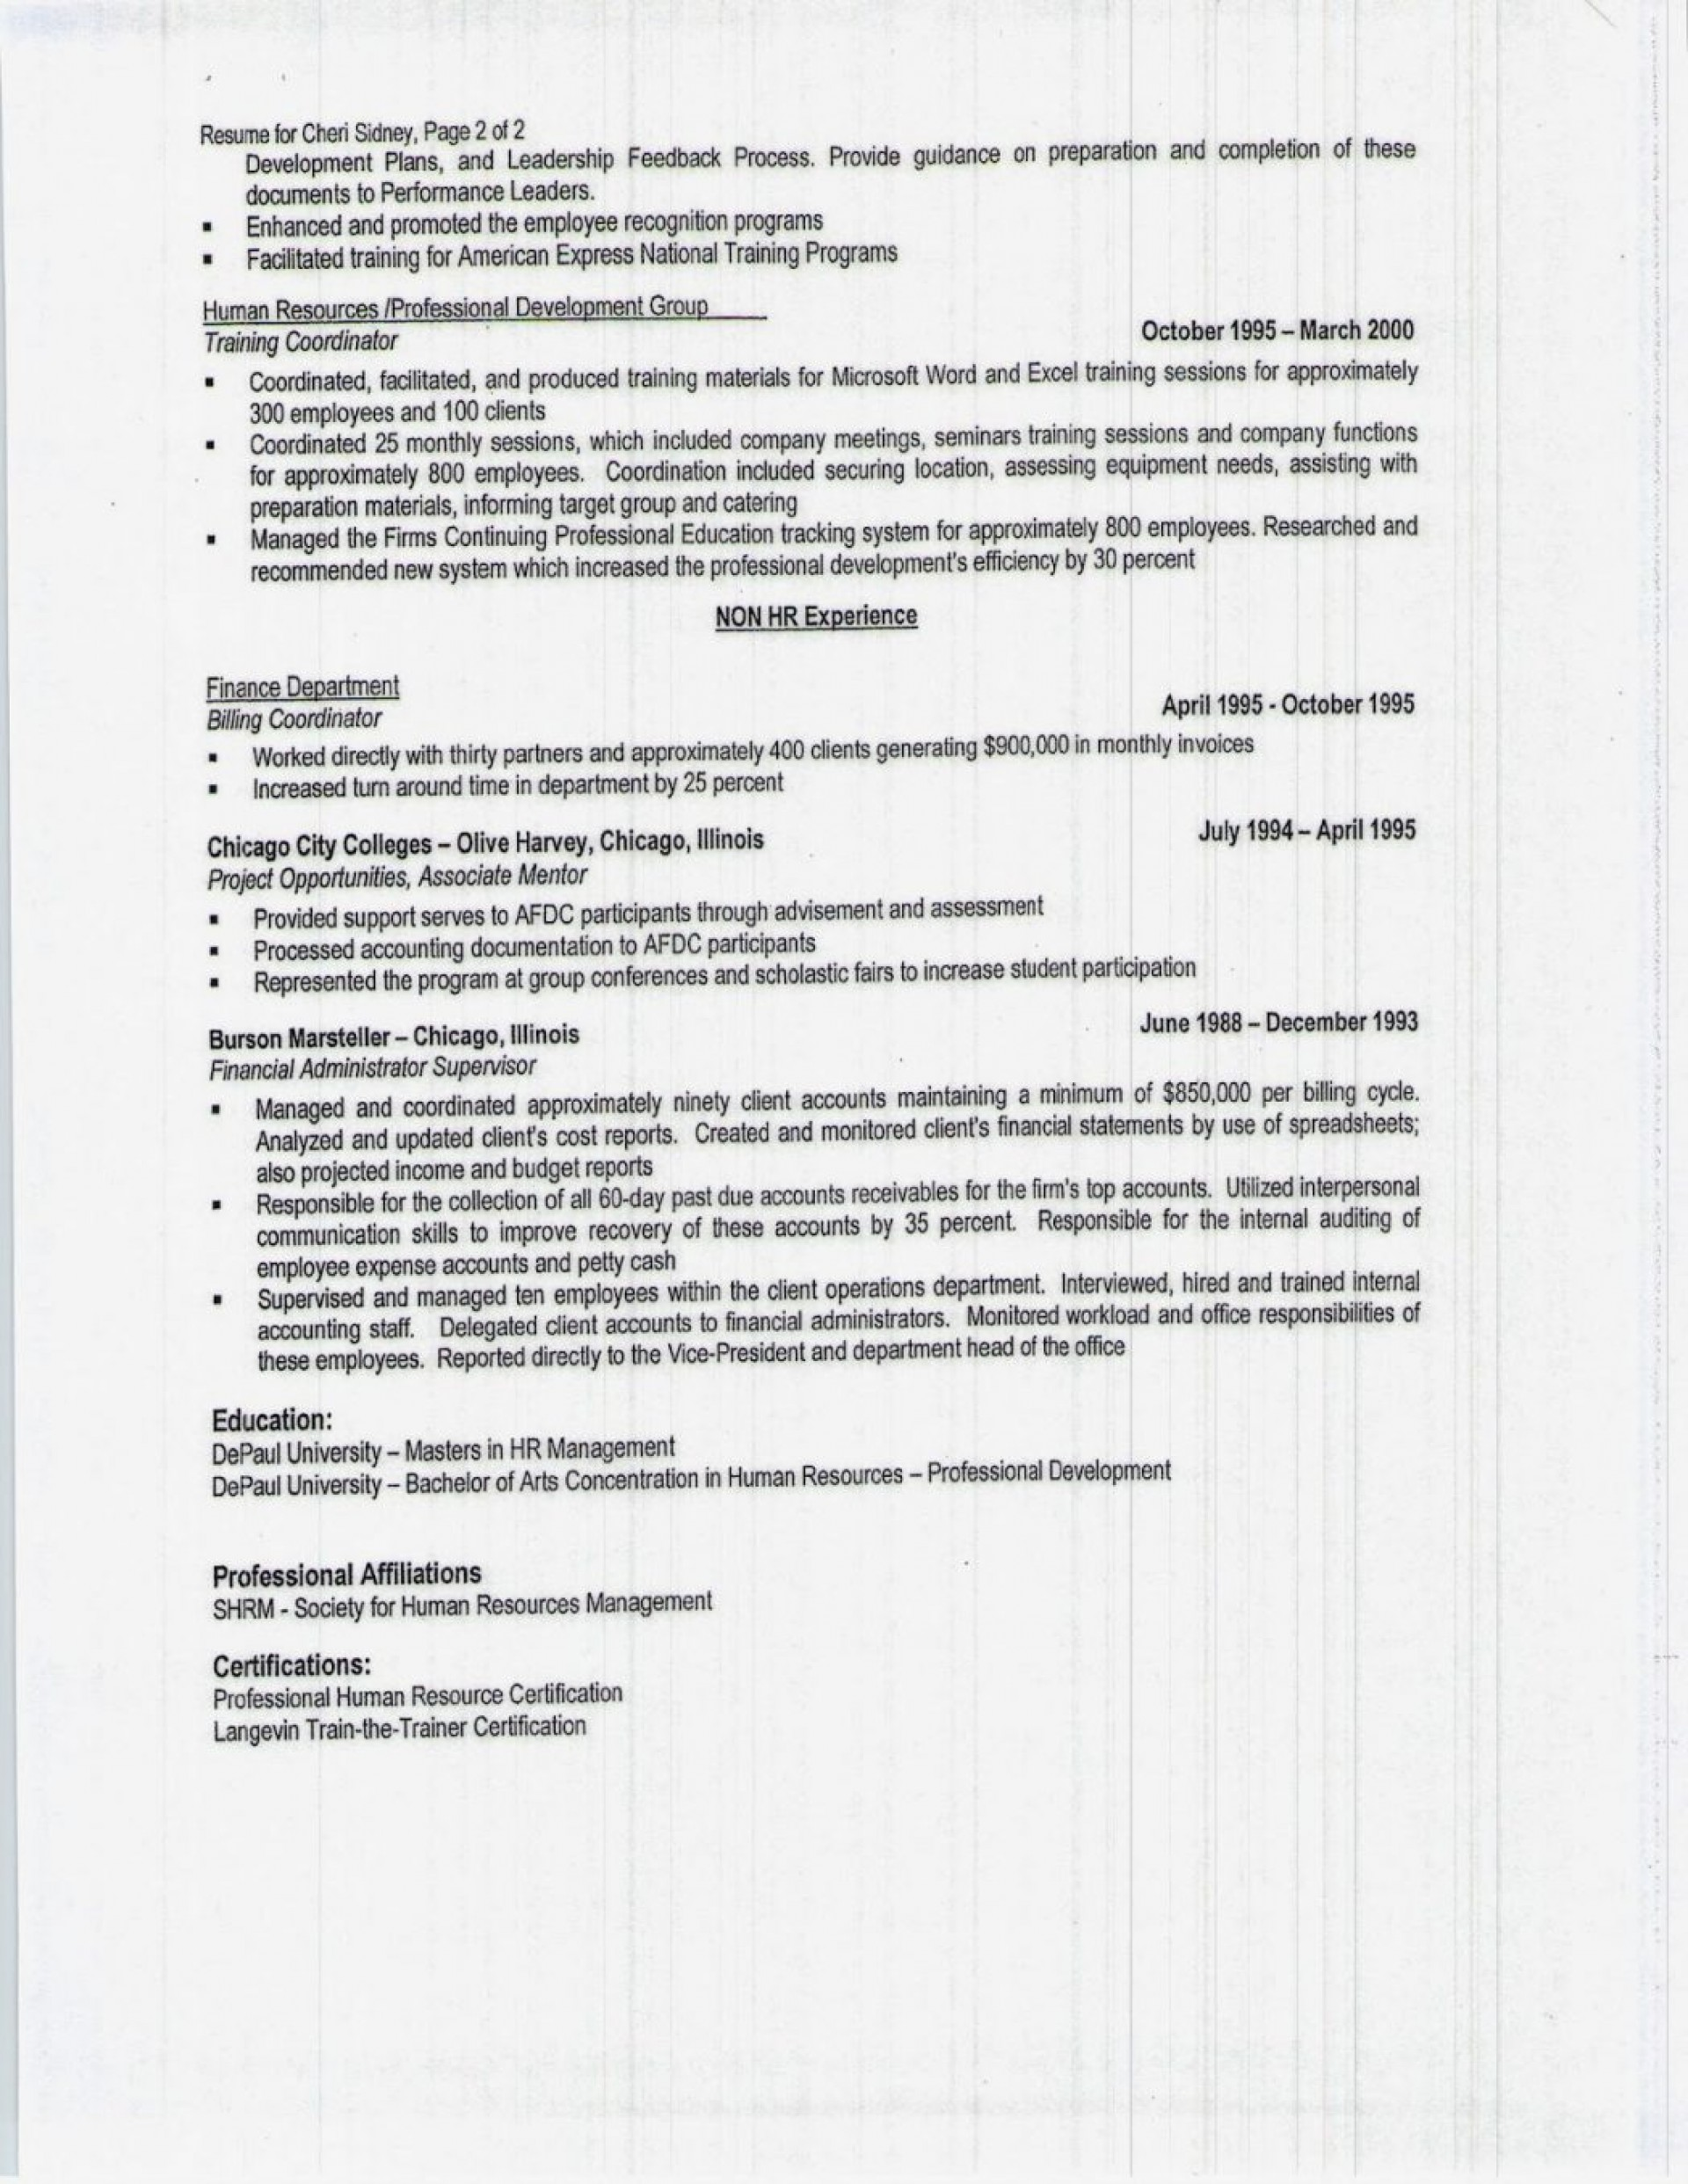 016 Essay Example No Scholarships Scholarship And Travel College School Sidne Colleges With Requirement Texas 1048x1356 Without Stunning Essays Requirements Required In 1920